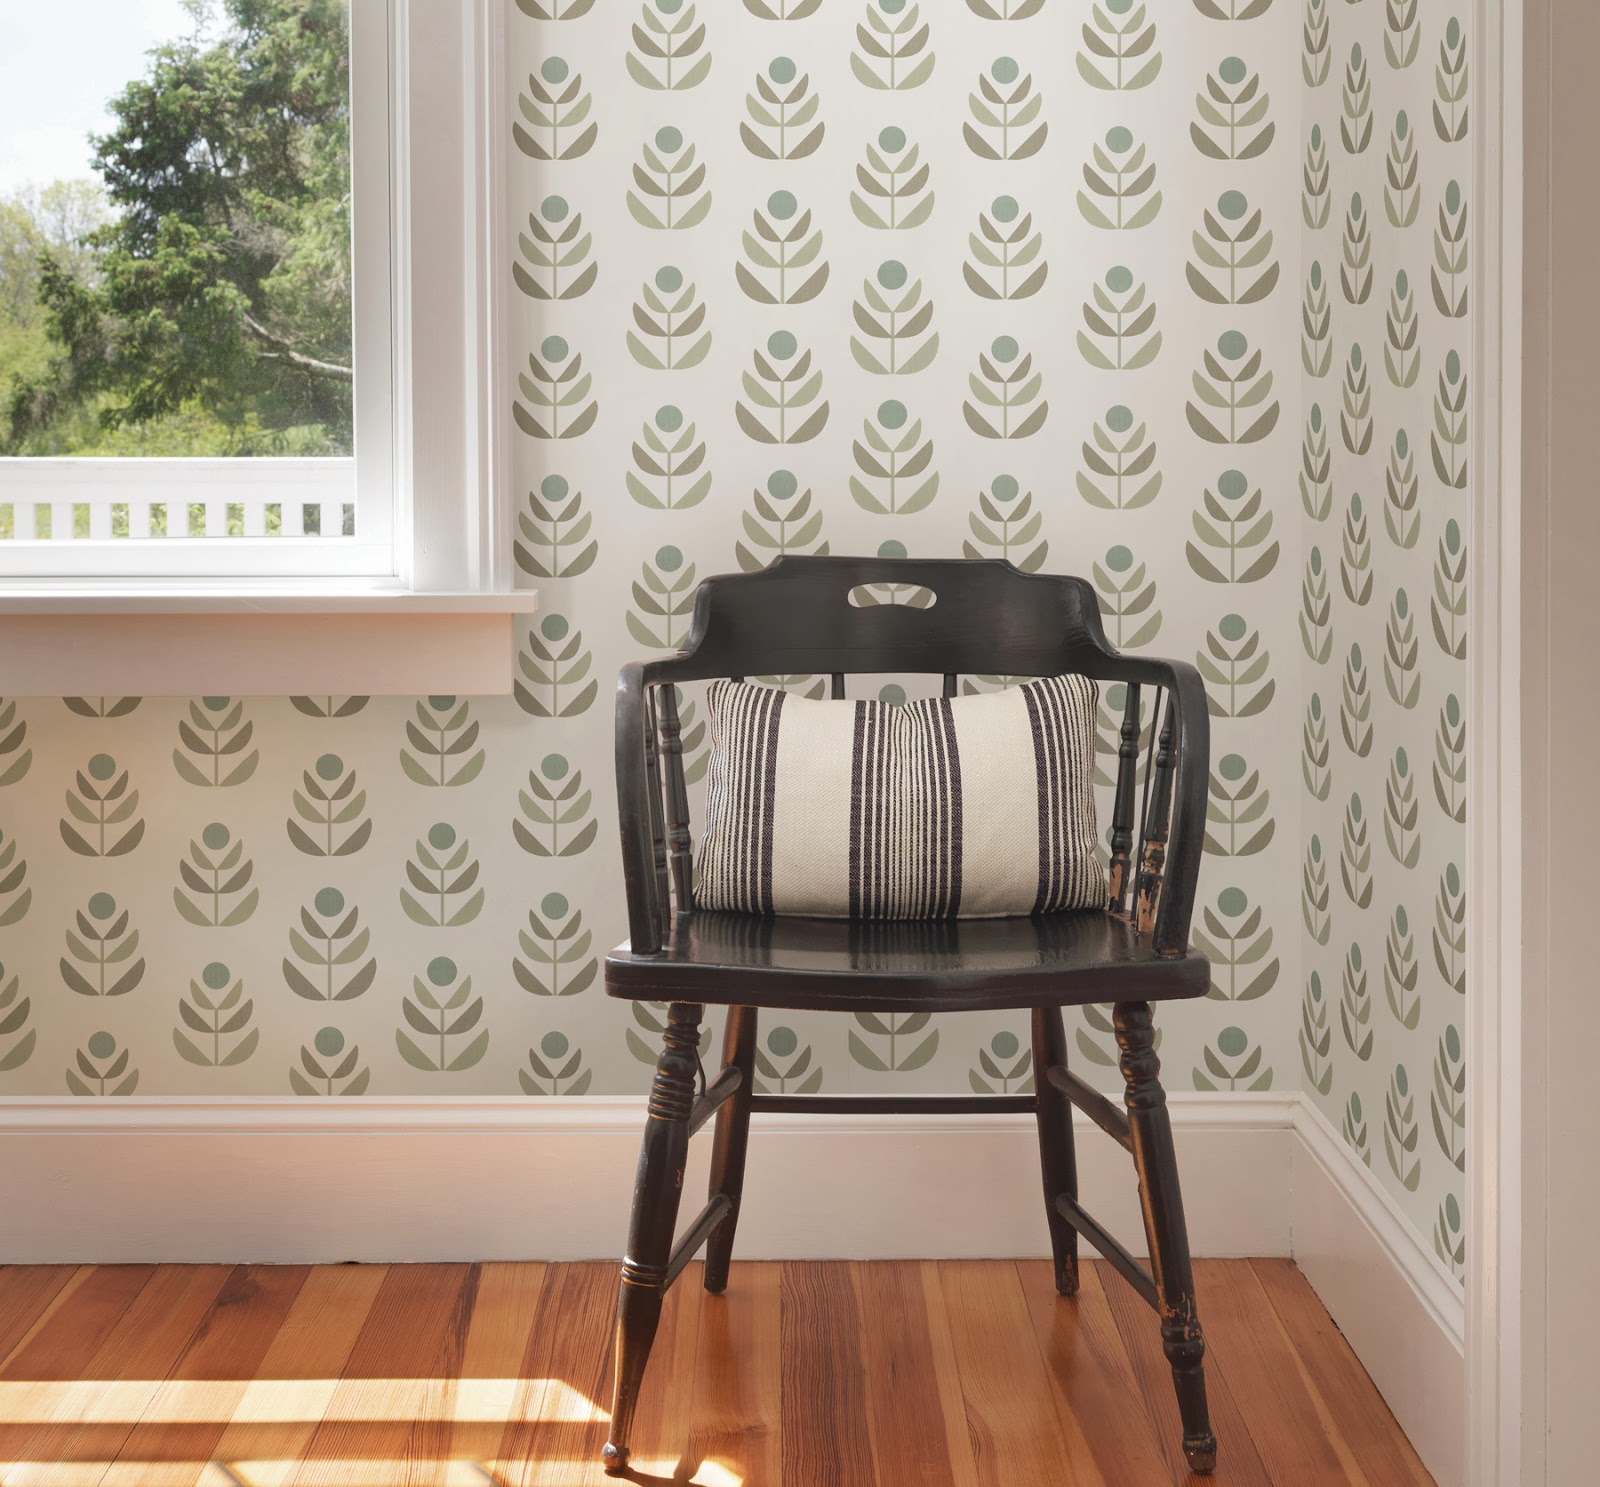 https://www.wallcoveringsforless.com/shoppingcart/prodlist1.CFM?page=_prod_detail.cfm&product_id=43460&startrow=73&search=Simple%20Space%202&pagereturn=_search.cfm